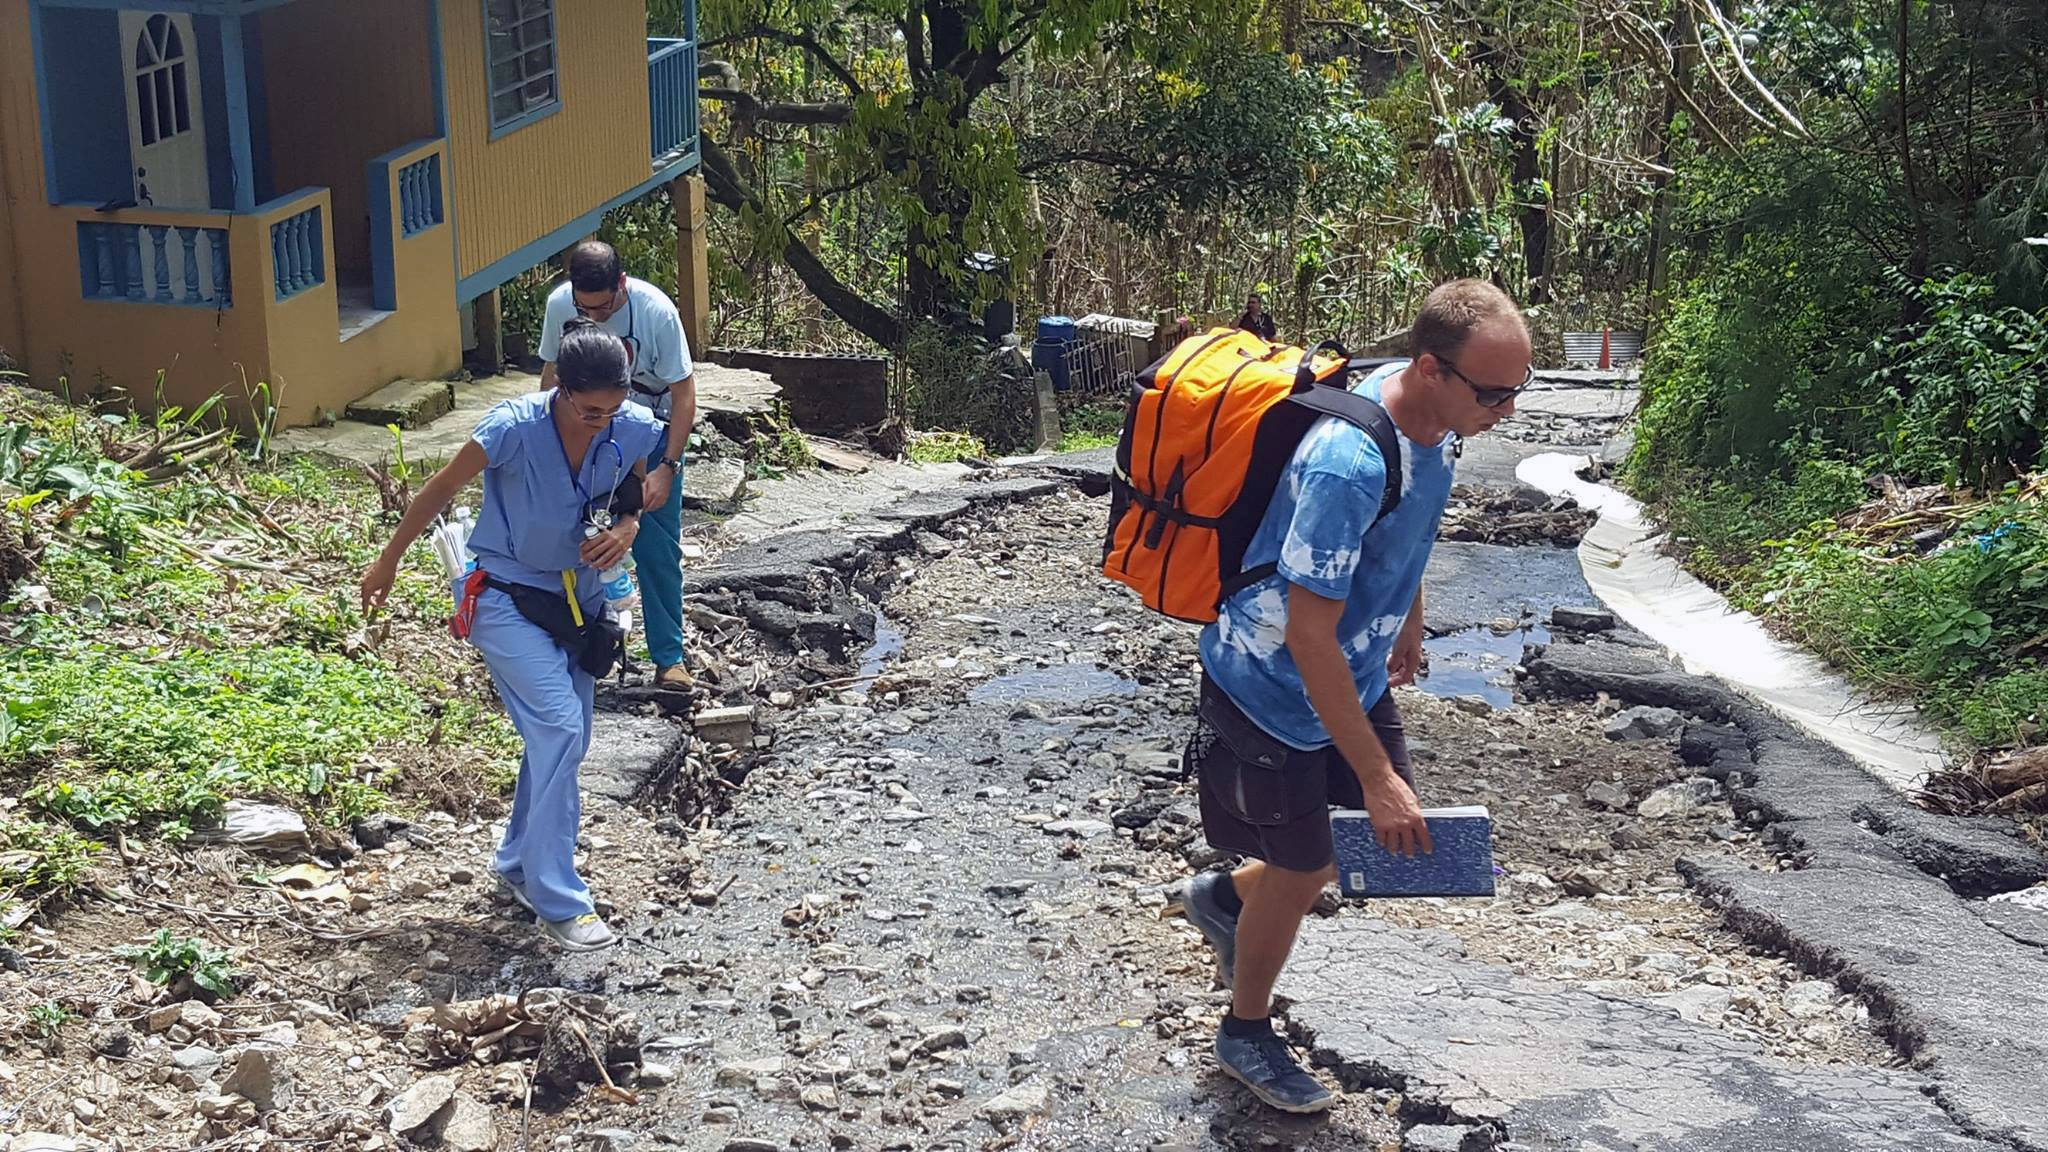 Equipped with an Emergency Medical Backpack, medical staff from Costa Salud Community Health Center, located in Rincon, Puerto Rico, continue to provide critical medical services to hurricane-affected communities in Rincon and surrounding areas. (Photo courtesy of Costa Salud)